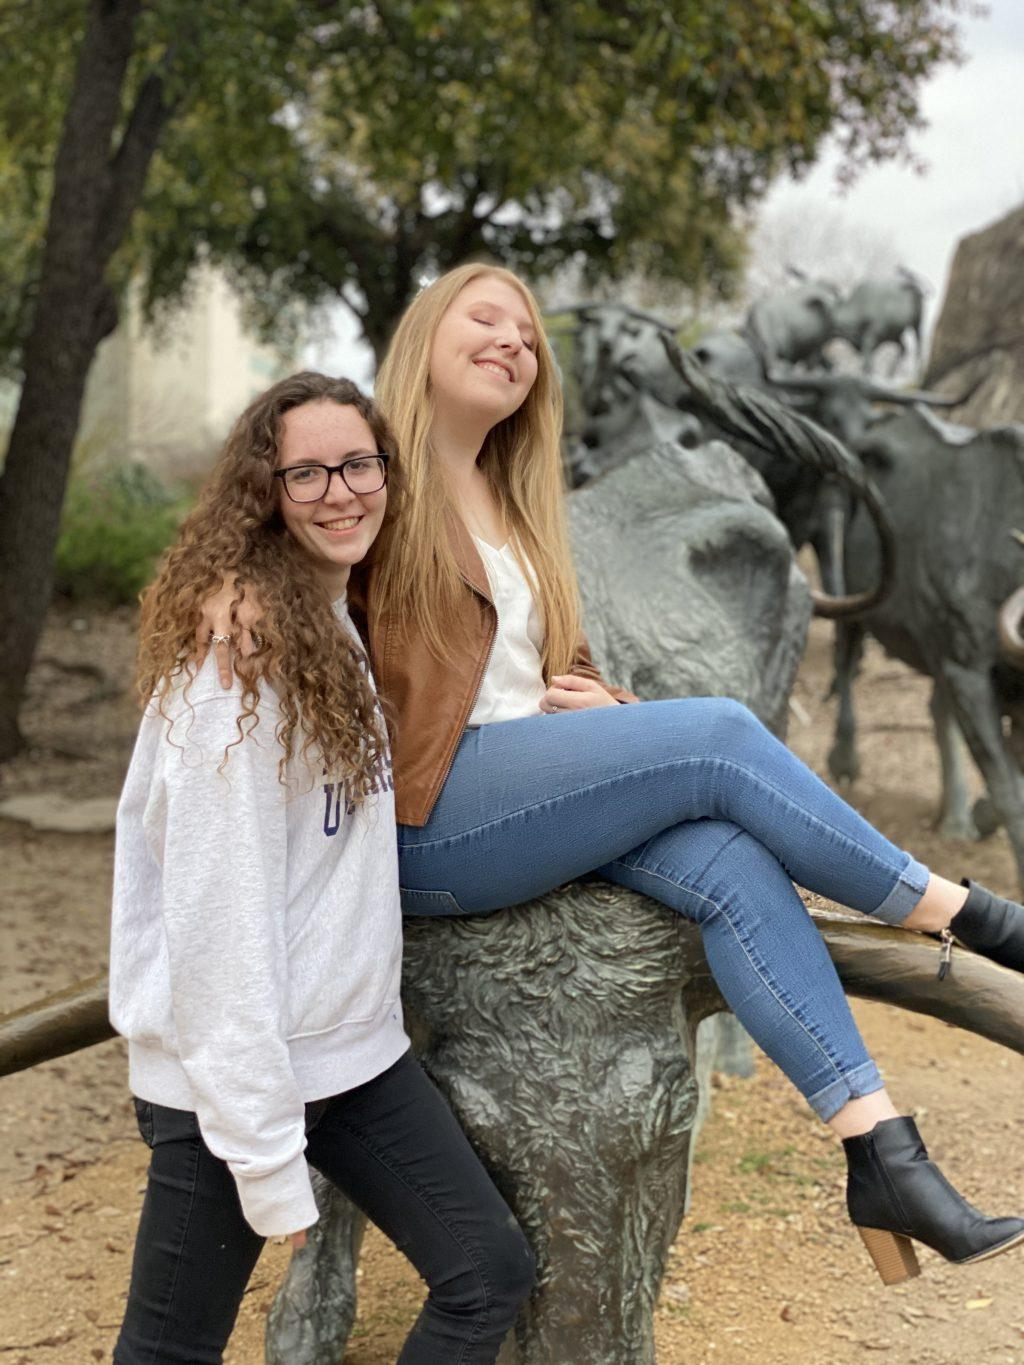 Juniors Katie Thompson and Samantha Miller enjoy time with each other in Fort Worth, Texas, in March. The couple returned to their hometown of McKinney, Texas, after Pepperdine closed in the spring. Photo courtesy of Katie Thompson